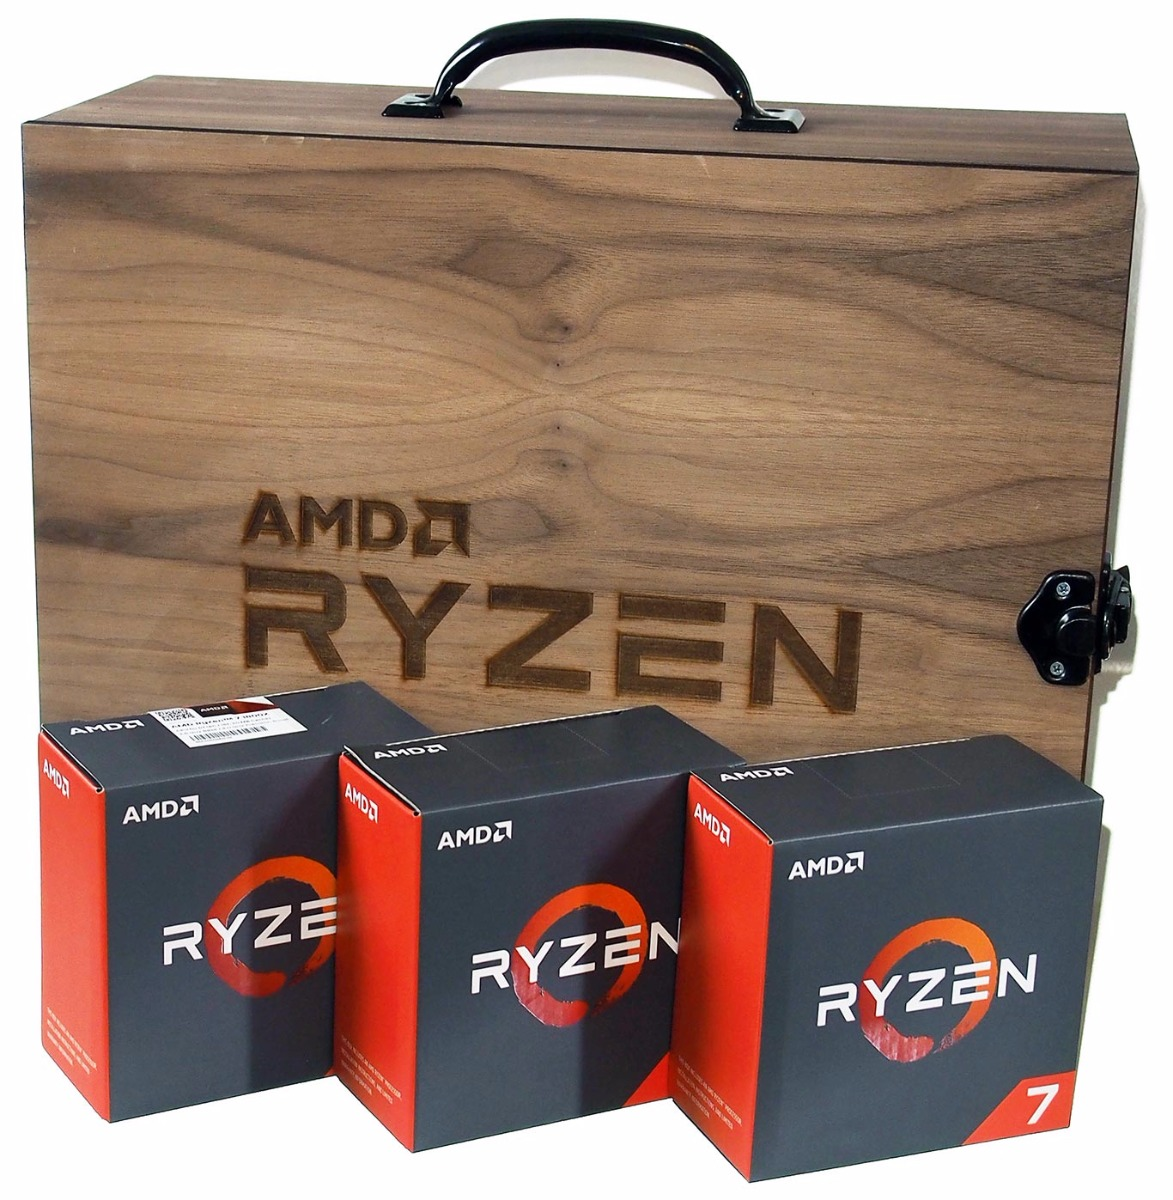 AMD Ryzen Review: Ryzen 7 1800X, 1700X, And 1700 - Zen Brings The Fight Back To Intel